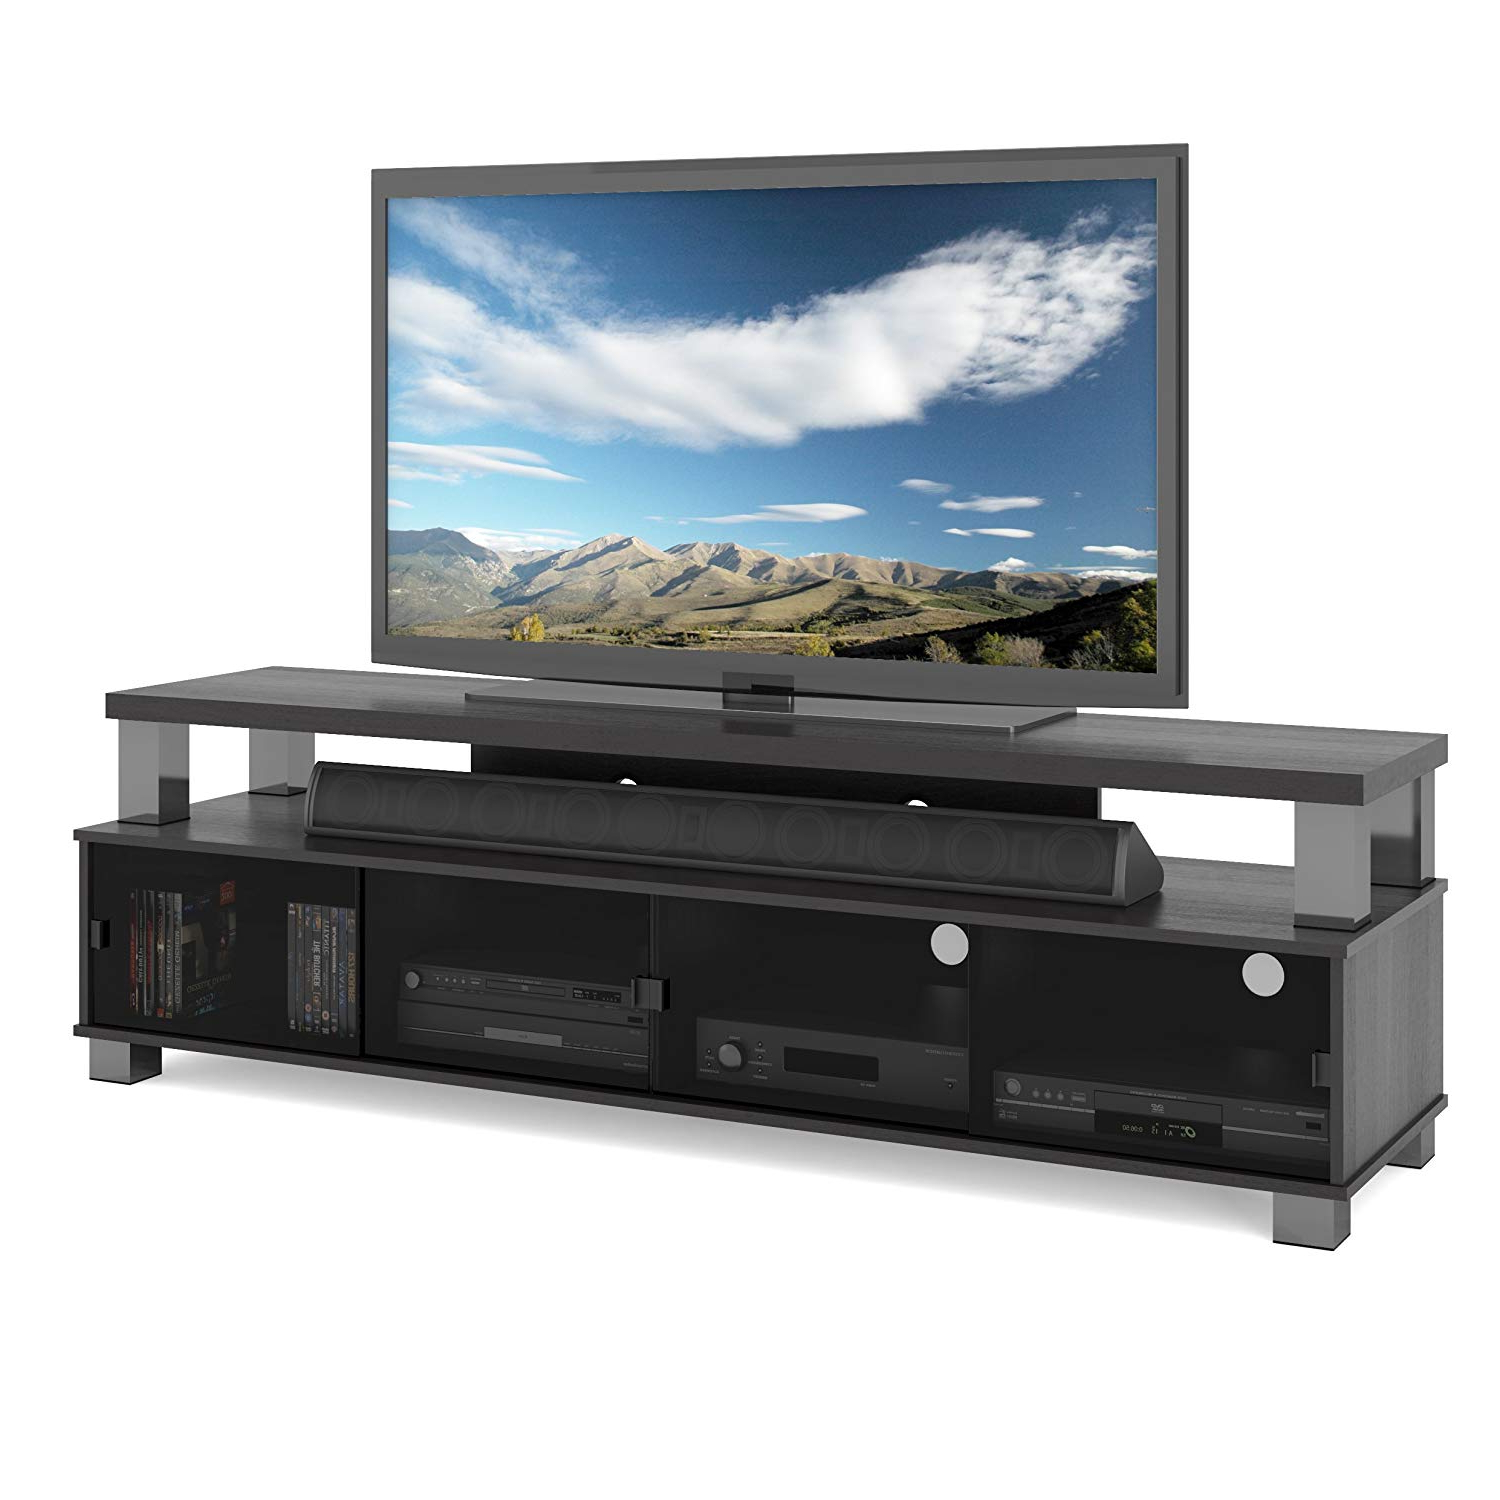 Amazon: Sonax B 003 Rbt Bromley Tv Stand, Ravenwood Black With Regard To Well Liked Sonax Tv Stands (View 14 of 20)